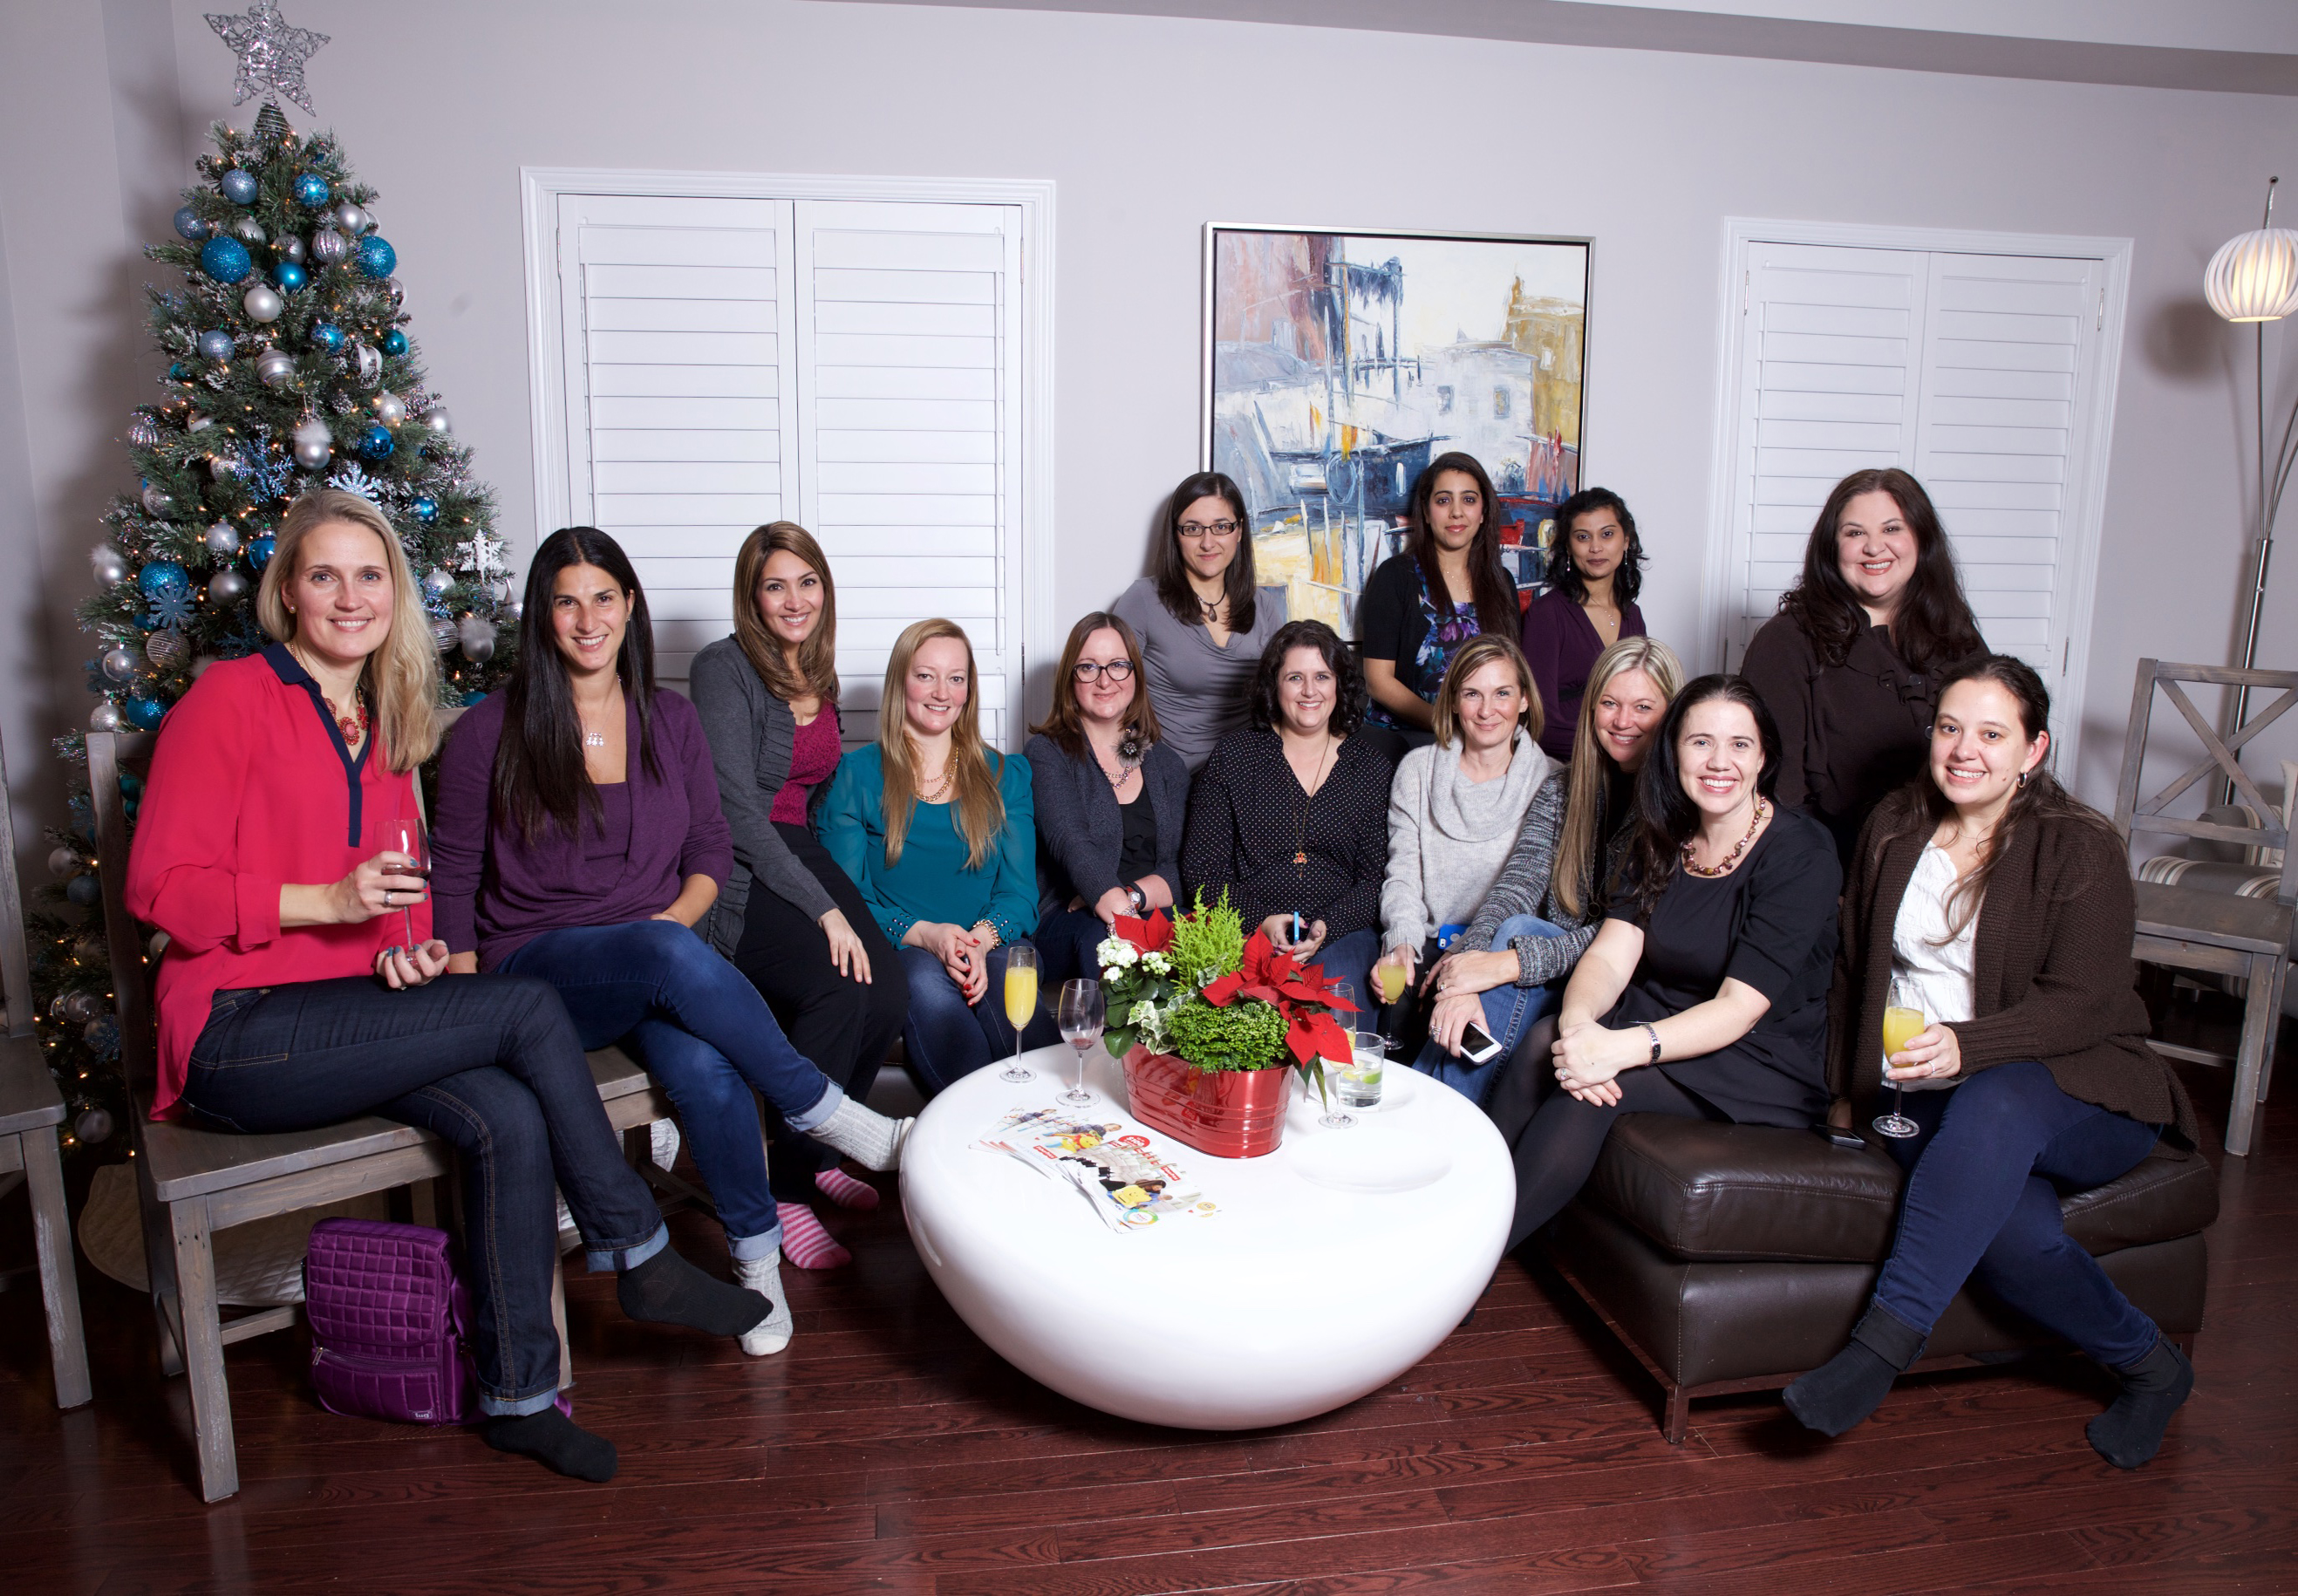 Tis' the Season for an Evening of Food, Friends & Fun at the Fisher Price Showroom